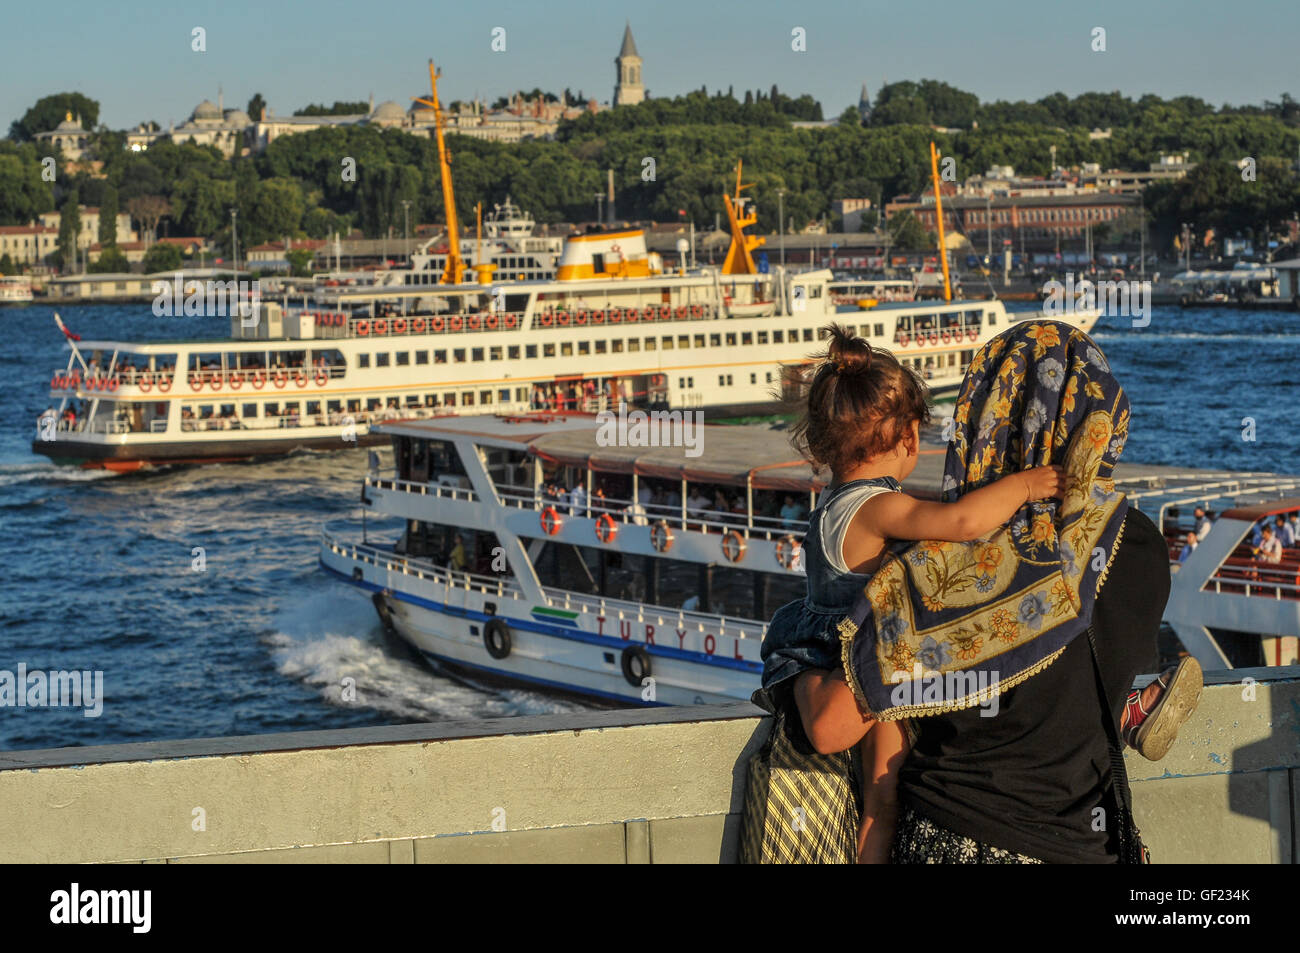 A woman and child watch ferry boats on the Golden Horn, from Galata bridge.  Topkapi Palace can be seen in the distance - Stock Image